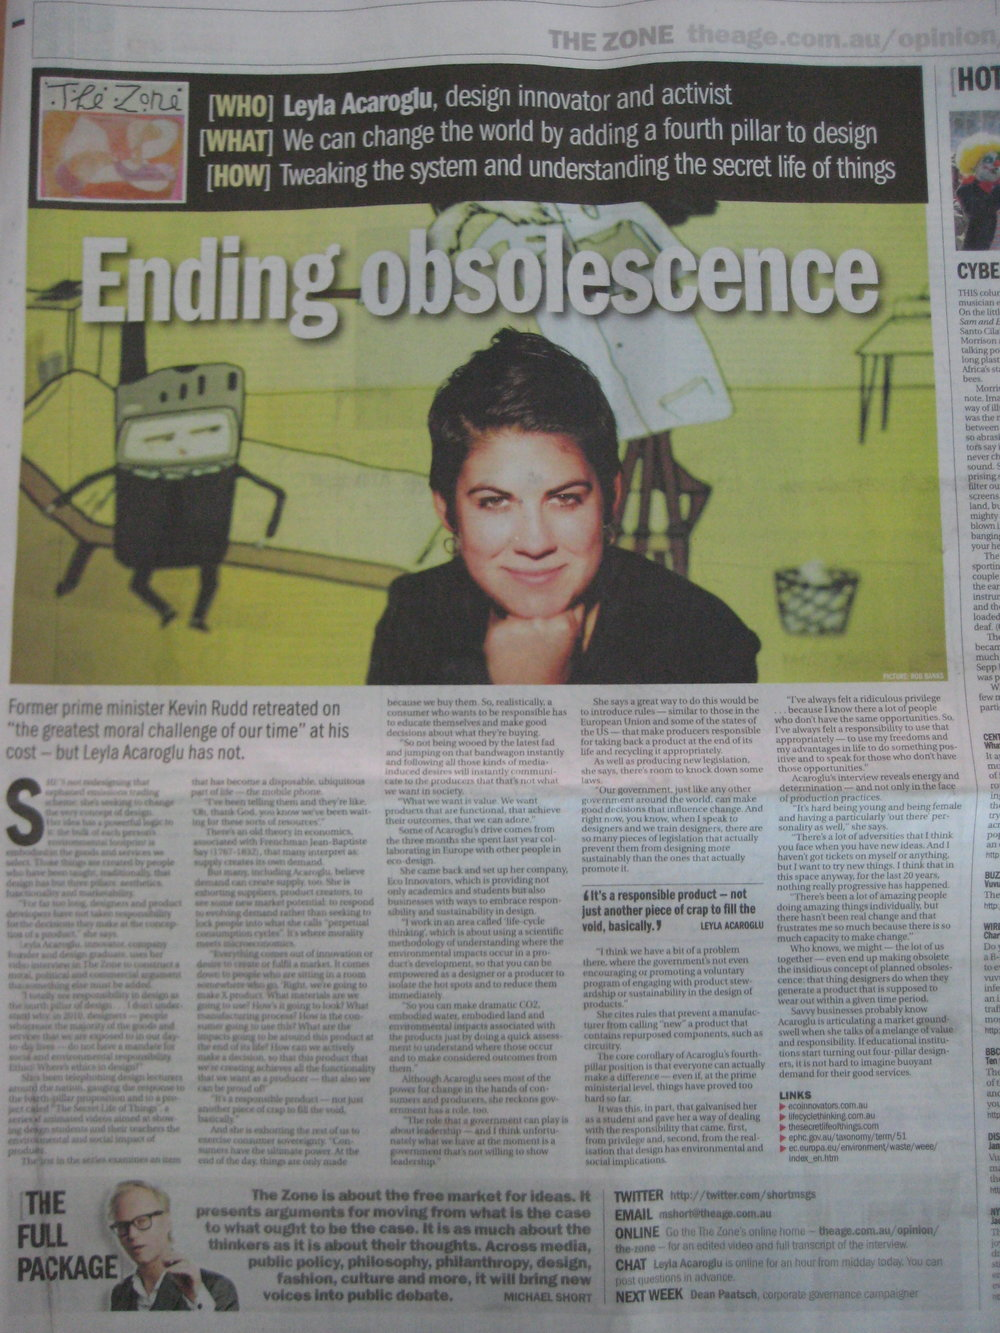 The Age Newspaper Interview in The Zone 2010